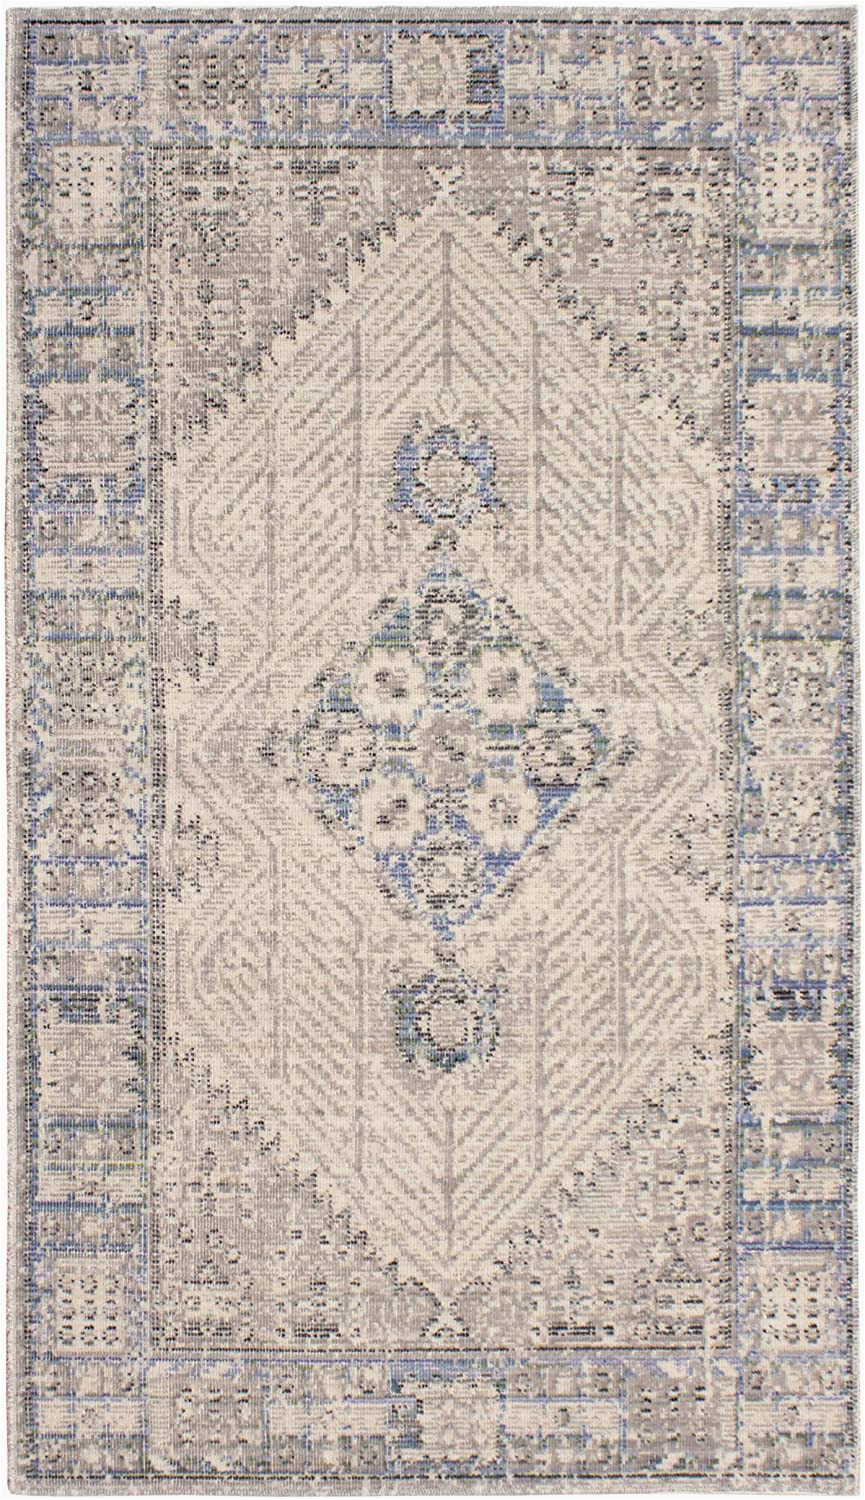 French Connection Home Bath Rug French Connection Kilm Rug 27x46 Grey Blue